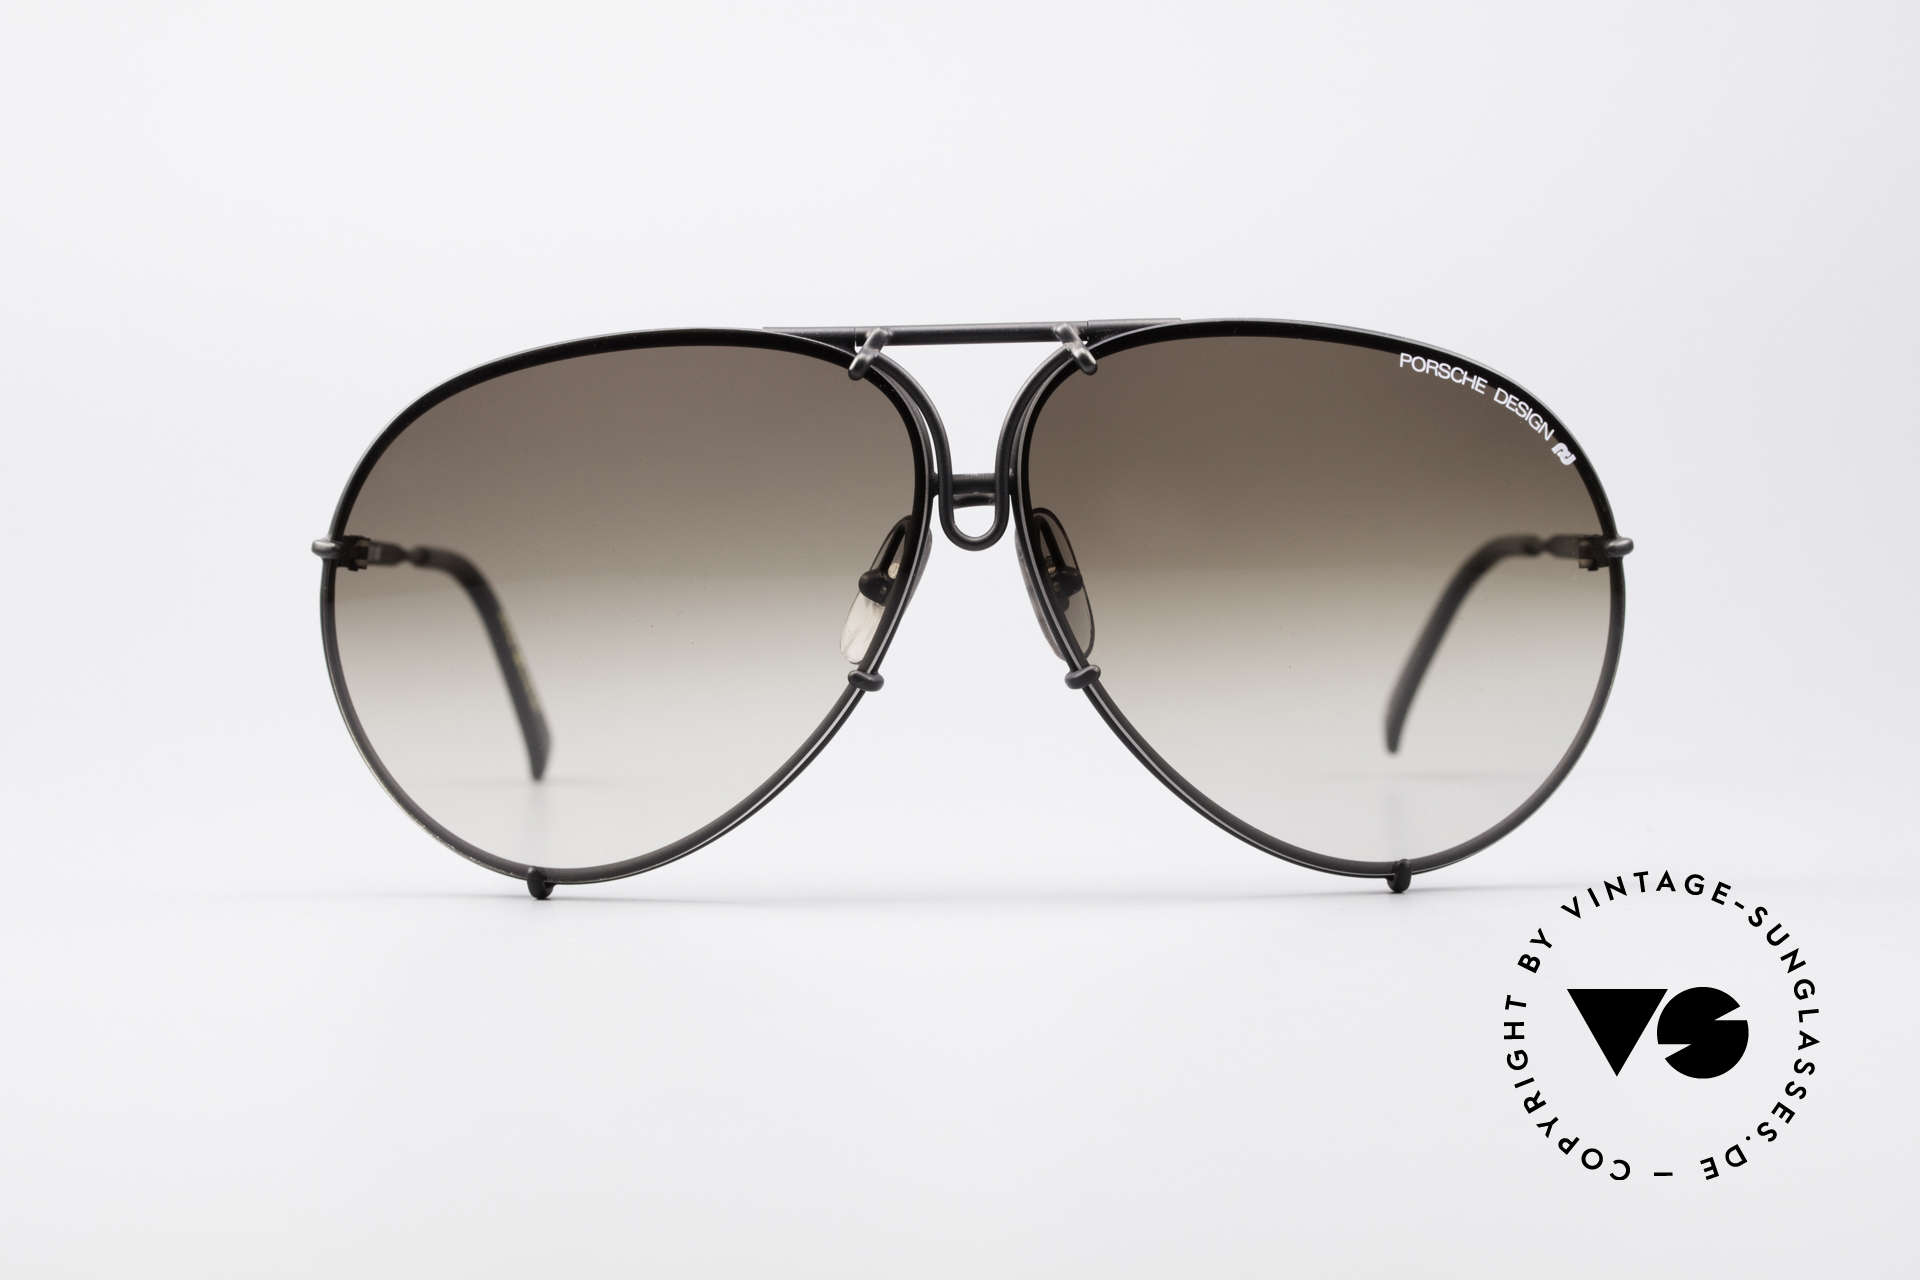 Porsche 5621 Large 80's Aviator Shades, one of the most wanted vintage models, worldwide, Made for Men